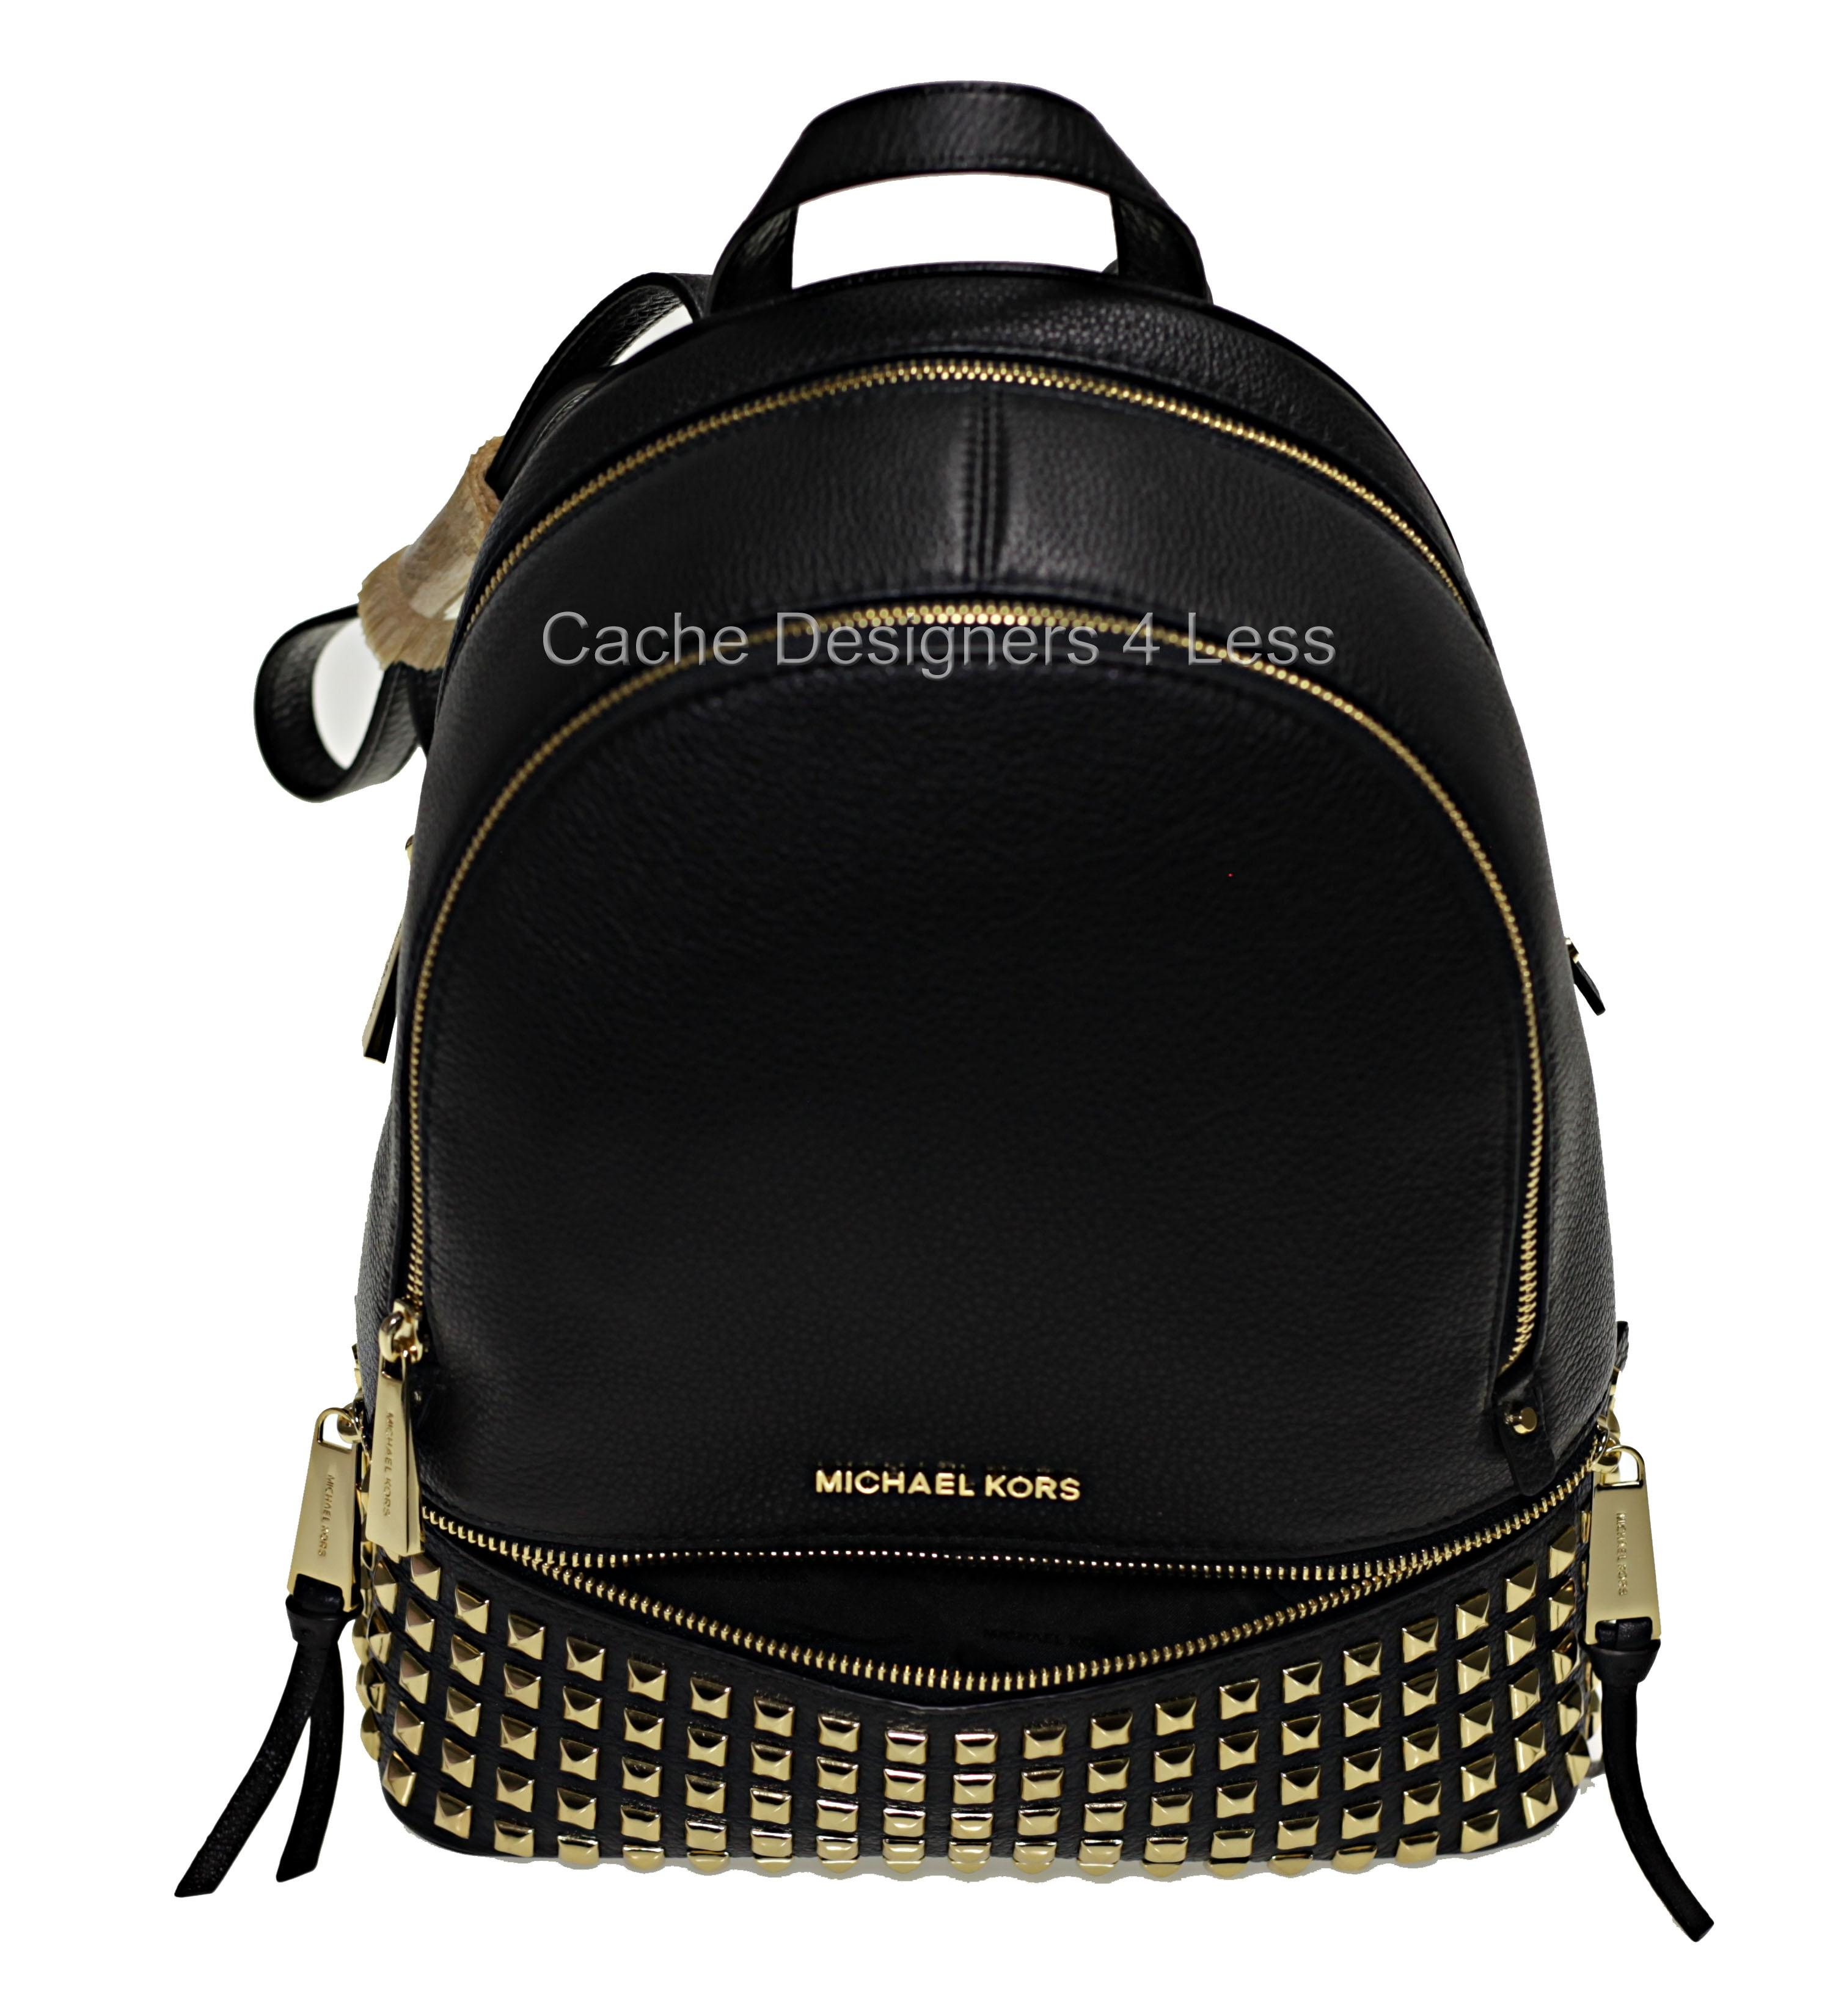 0c22f443a6ce ... top quality michael kors rhea zip pyramid studded medium black grain  leather backpack tradesy 92b55 d5a79